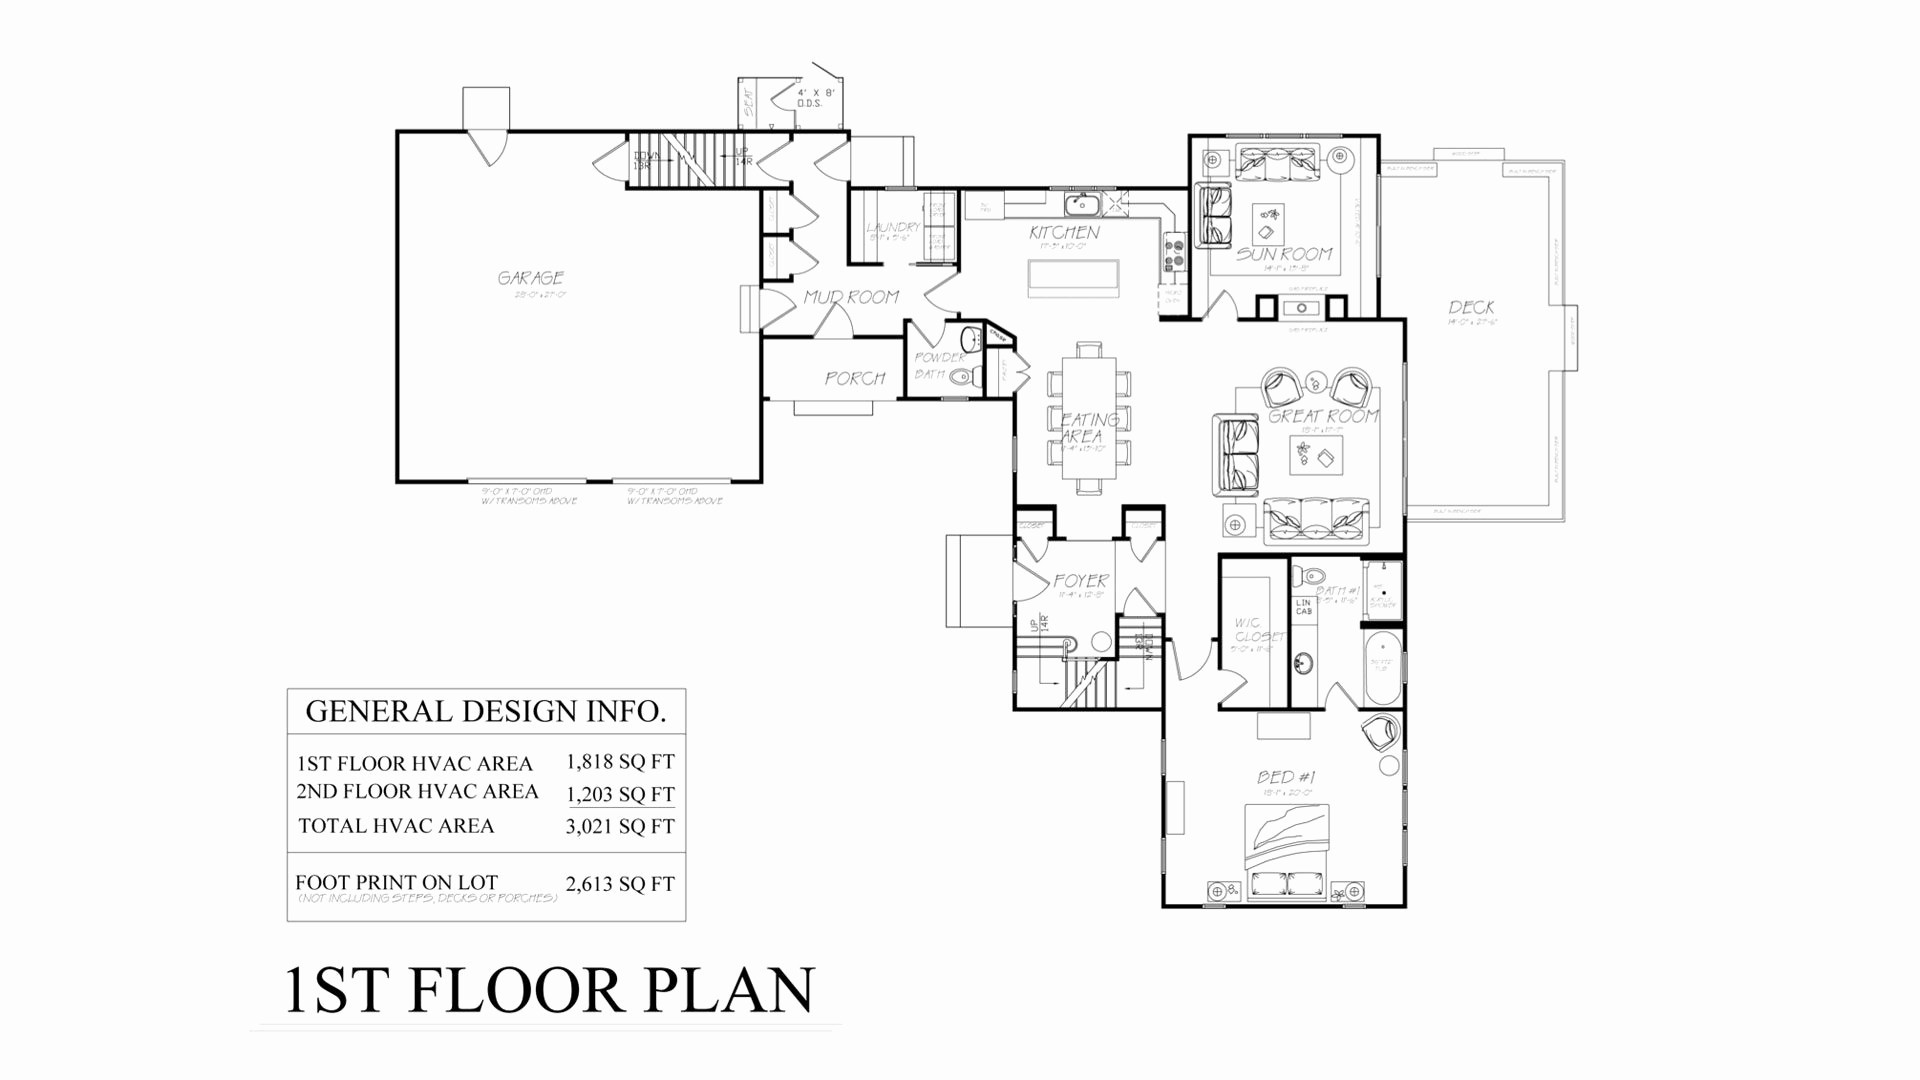 Small Dog House Plans Dog House Plans Printable Lovely Printable House Plans Chicken House Plans Free Best I Pinimg 736x 0d Dog House Plans Printable